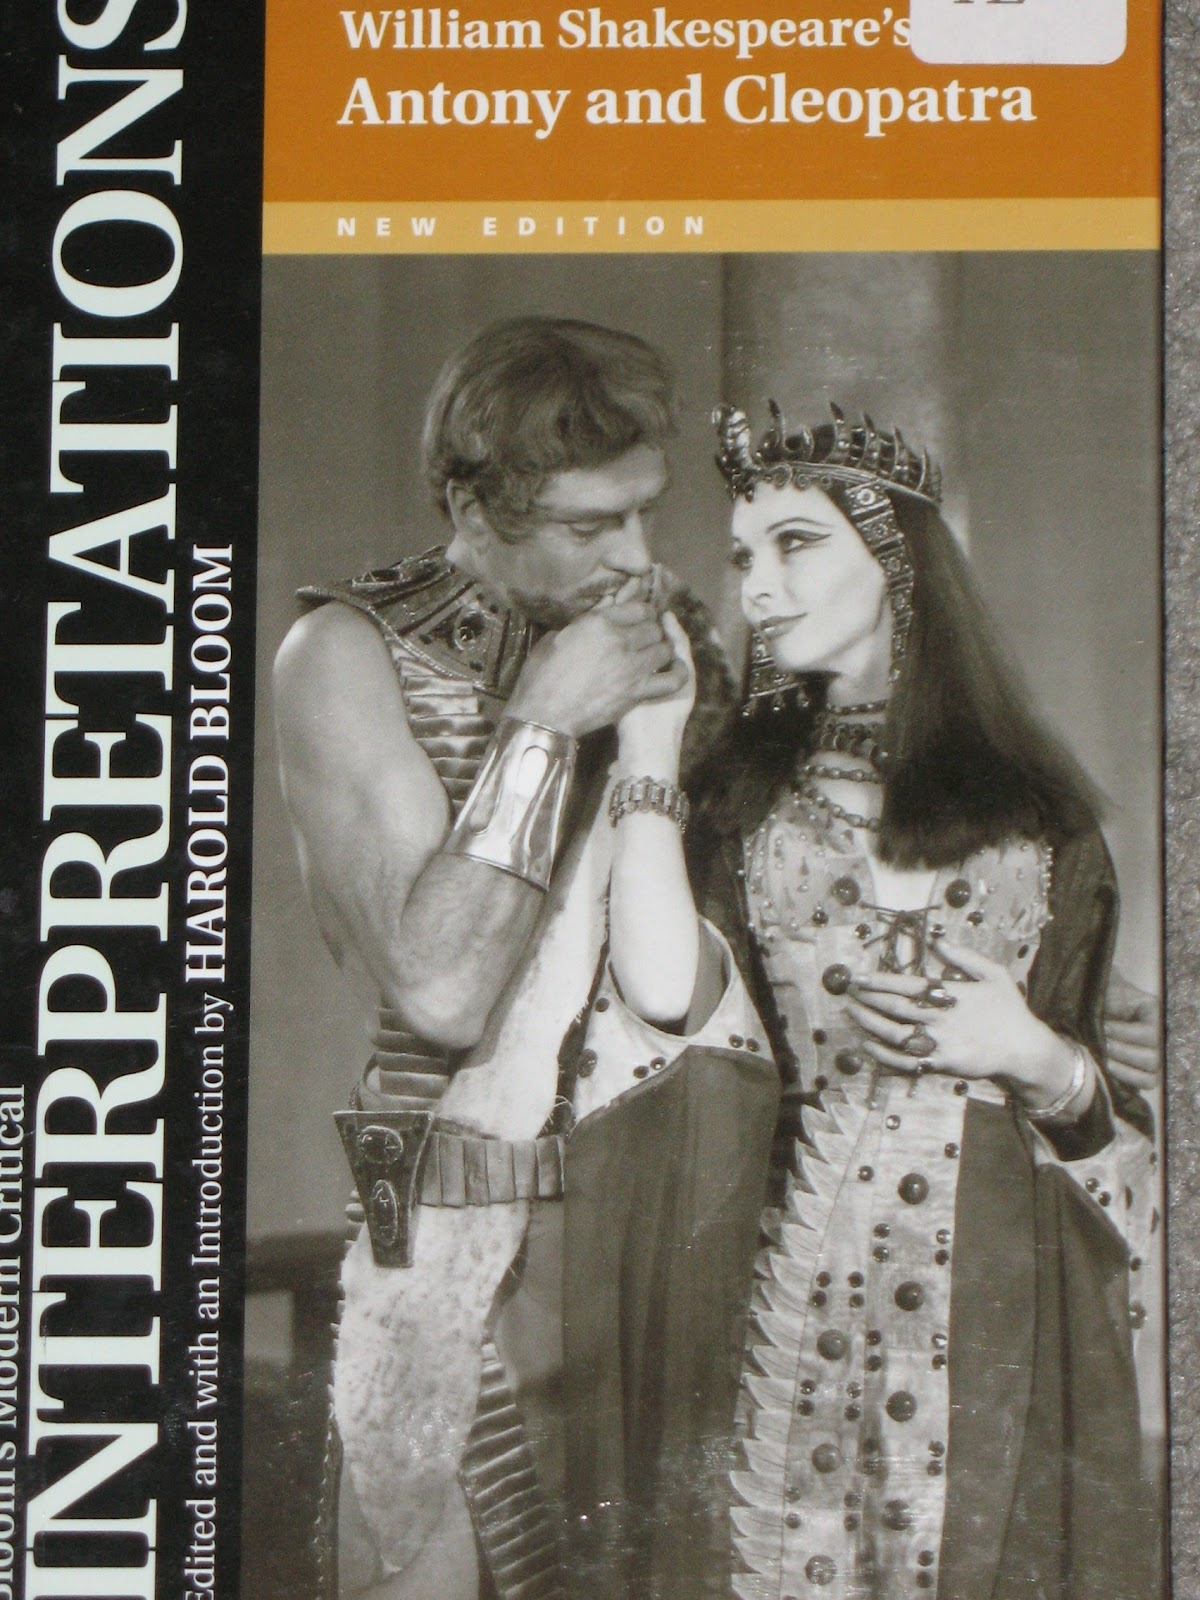 mostly shakespeare but also some occasional nonsense william shakespeare s antony and cleopatra new edition edited and an introduction by harold bloom this is a volume in the modern critical